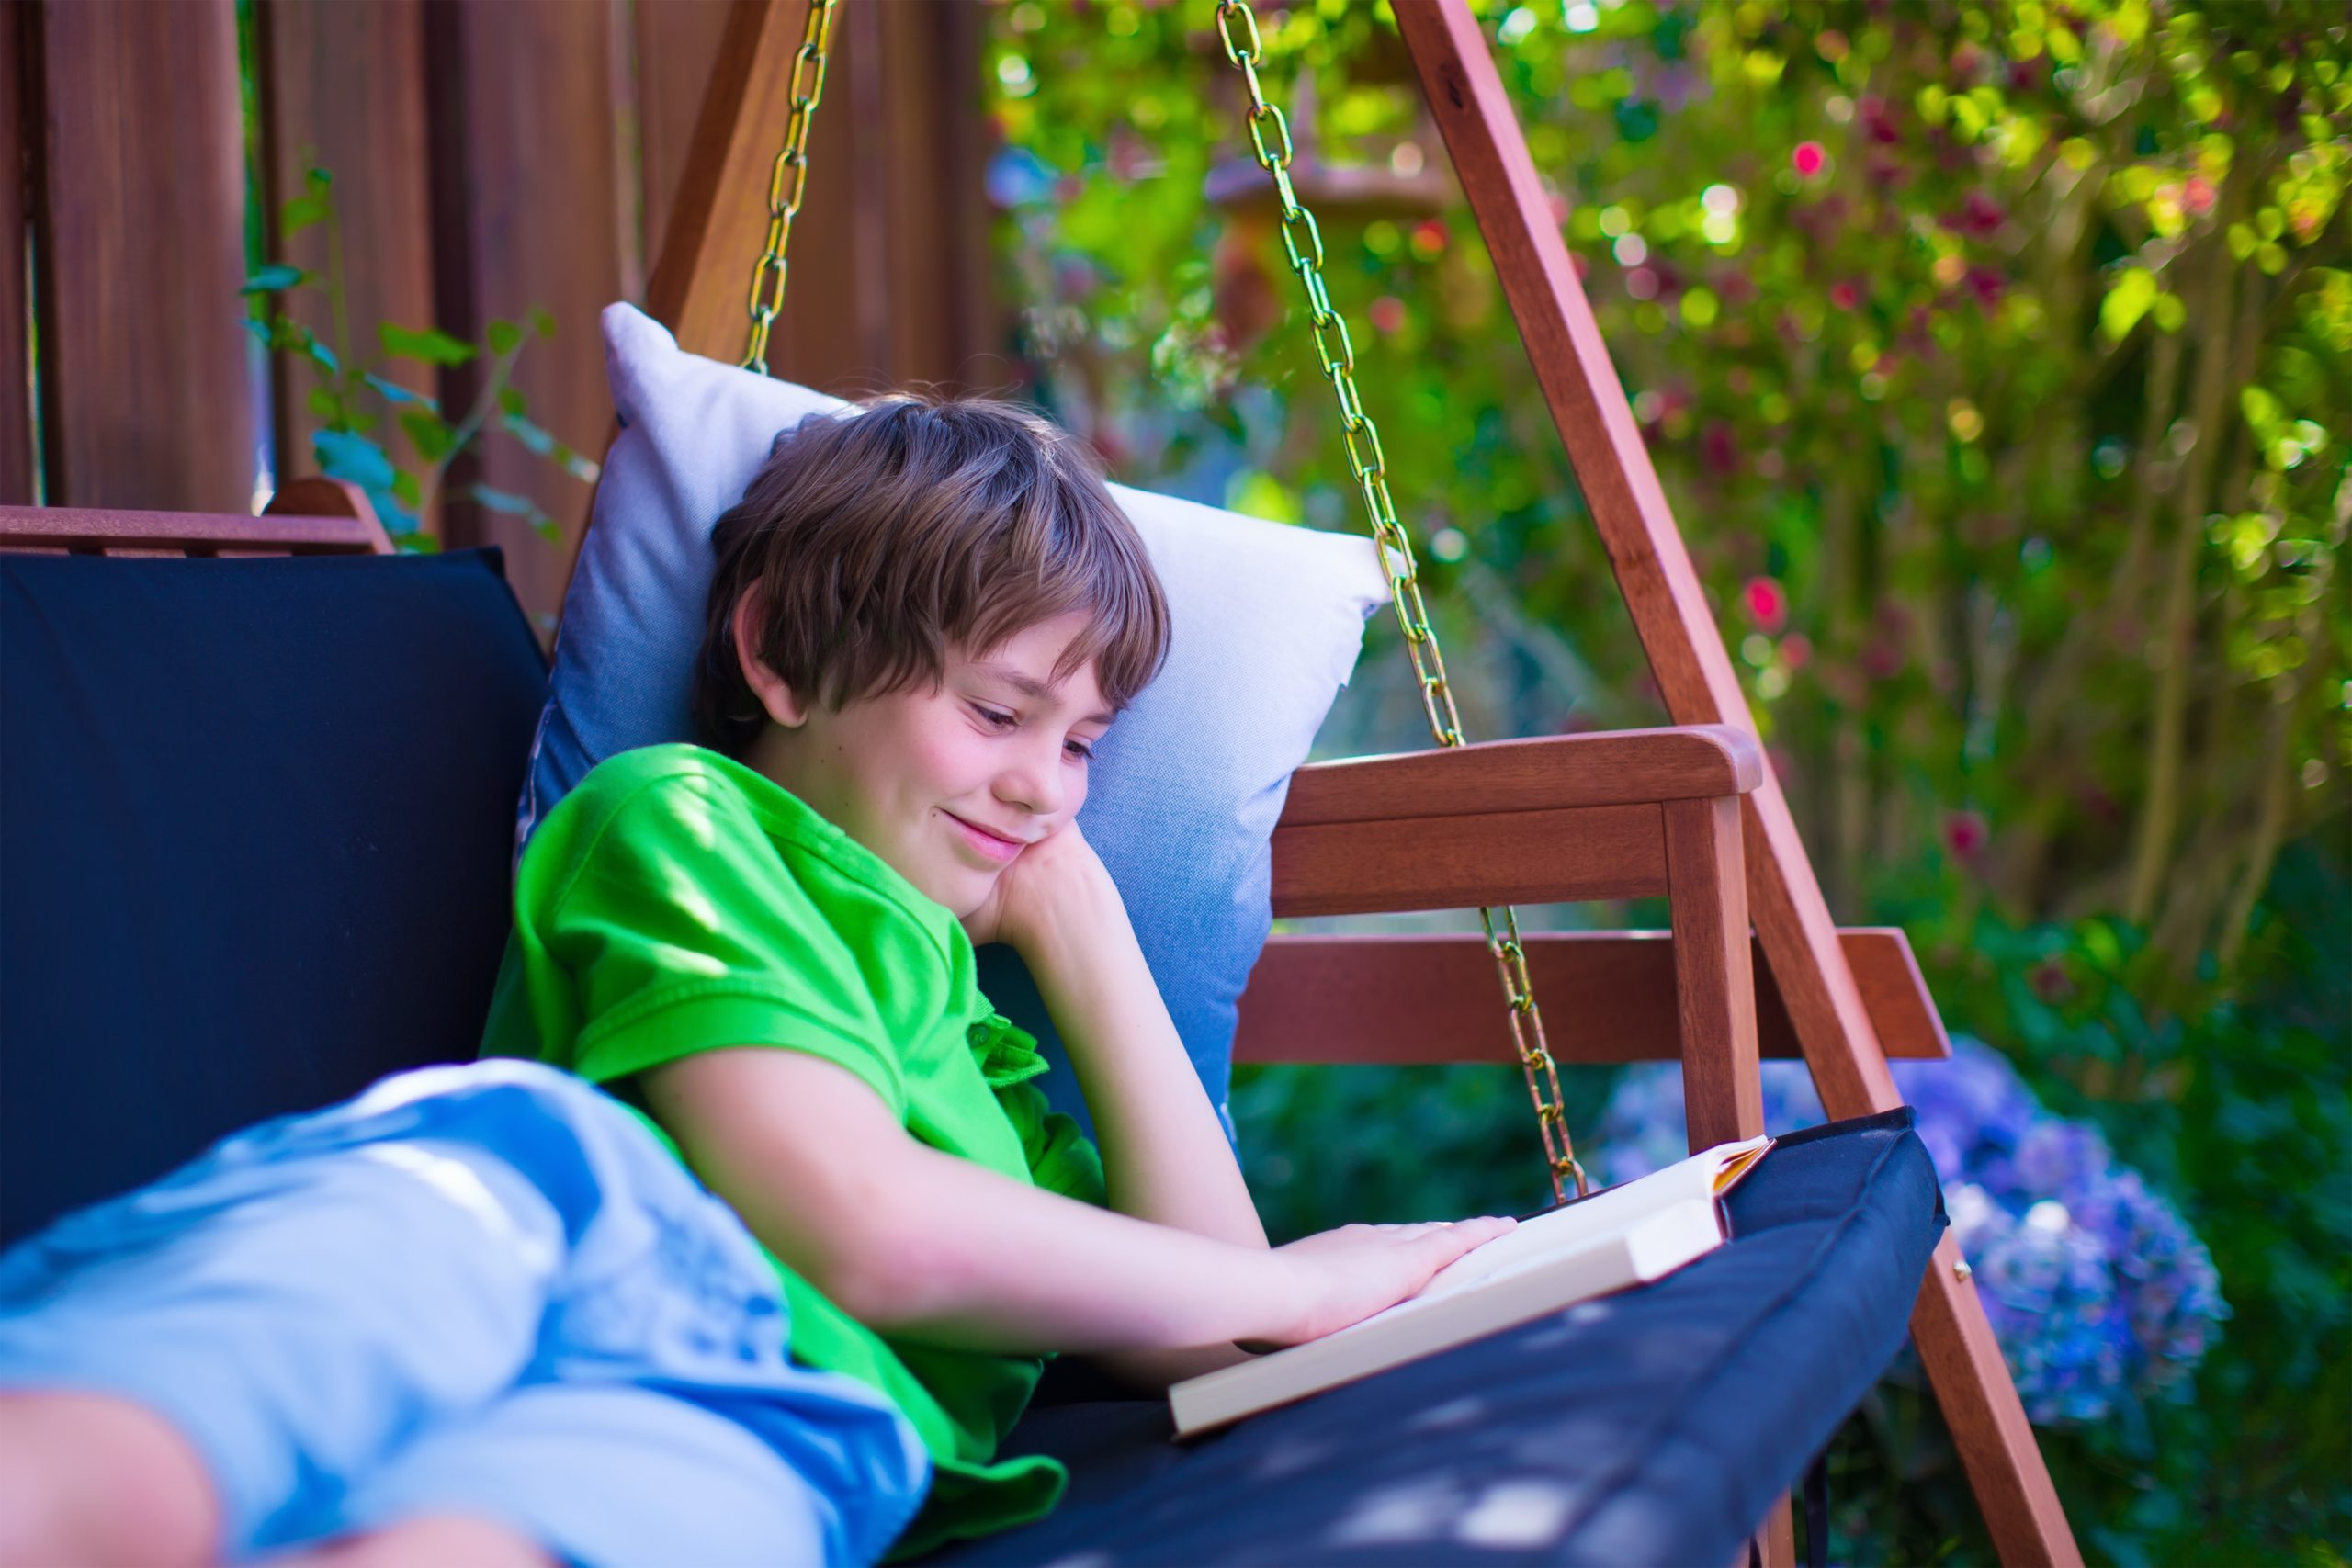 Boy on Porch Swing Reading a Book